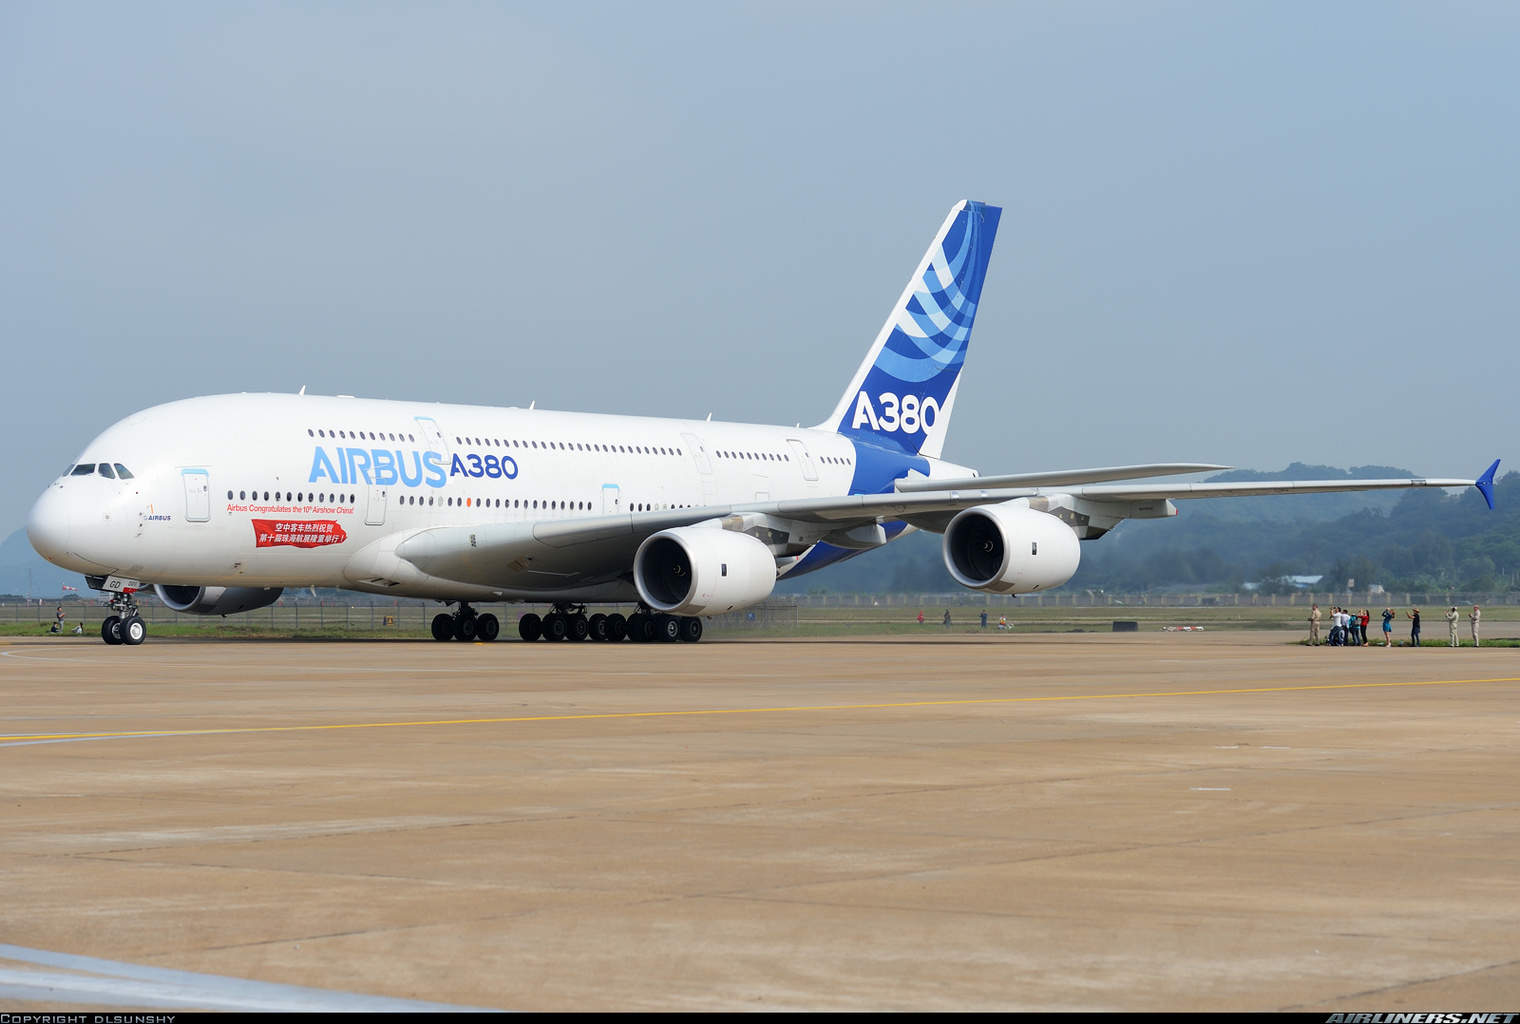 Could this production cut be last straw for the Airbus A380 program